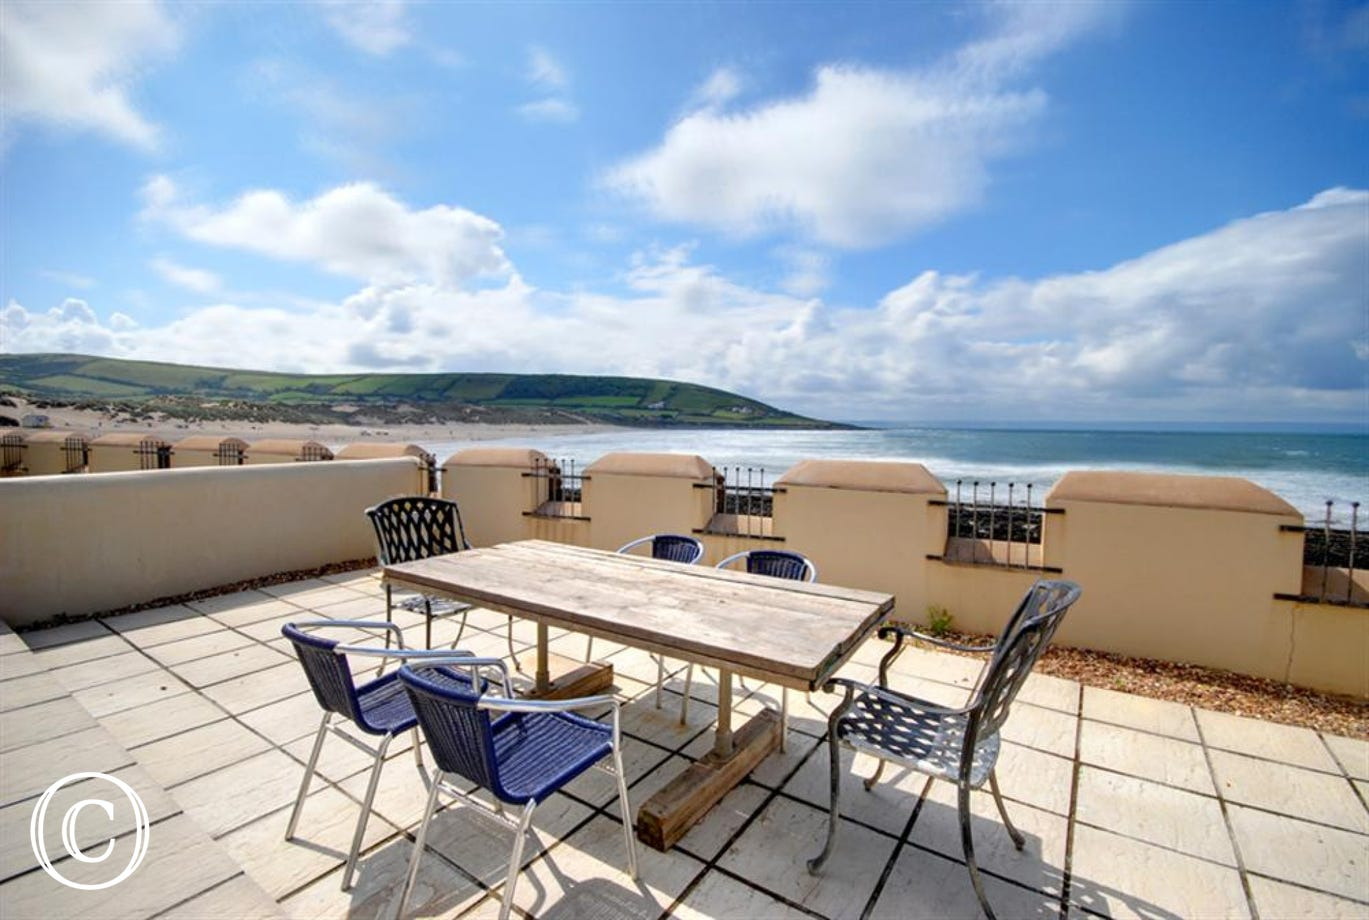 Enjoy any meal of the day out in the sun with fantastic views over the coast at Croyde.